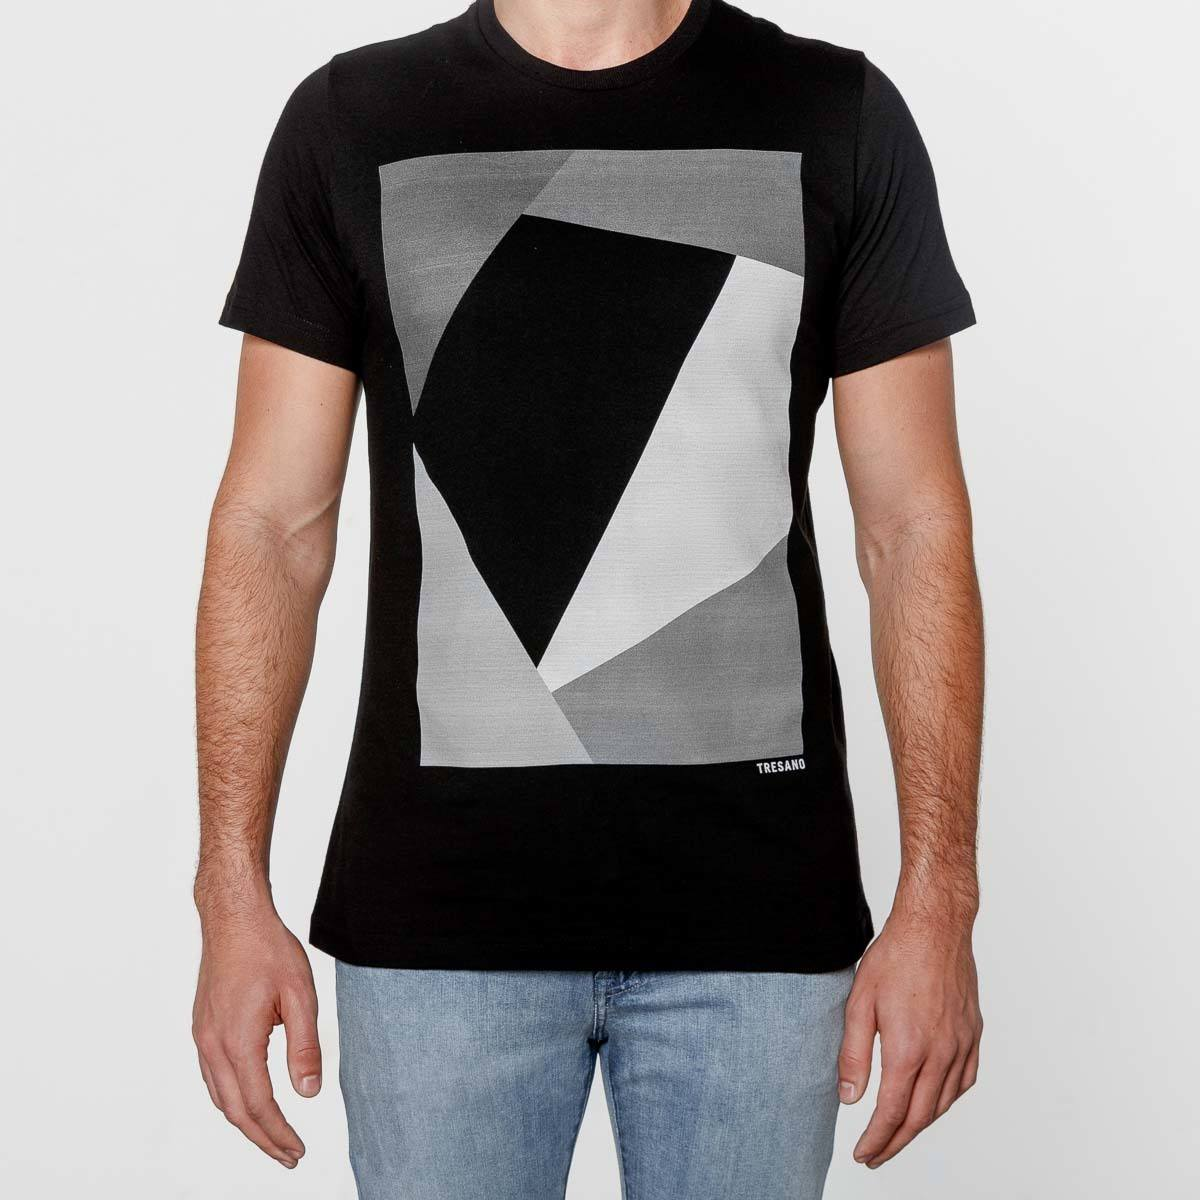 Camiseta Tresano B.Geometric Slim Fit